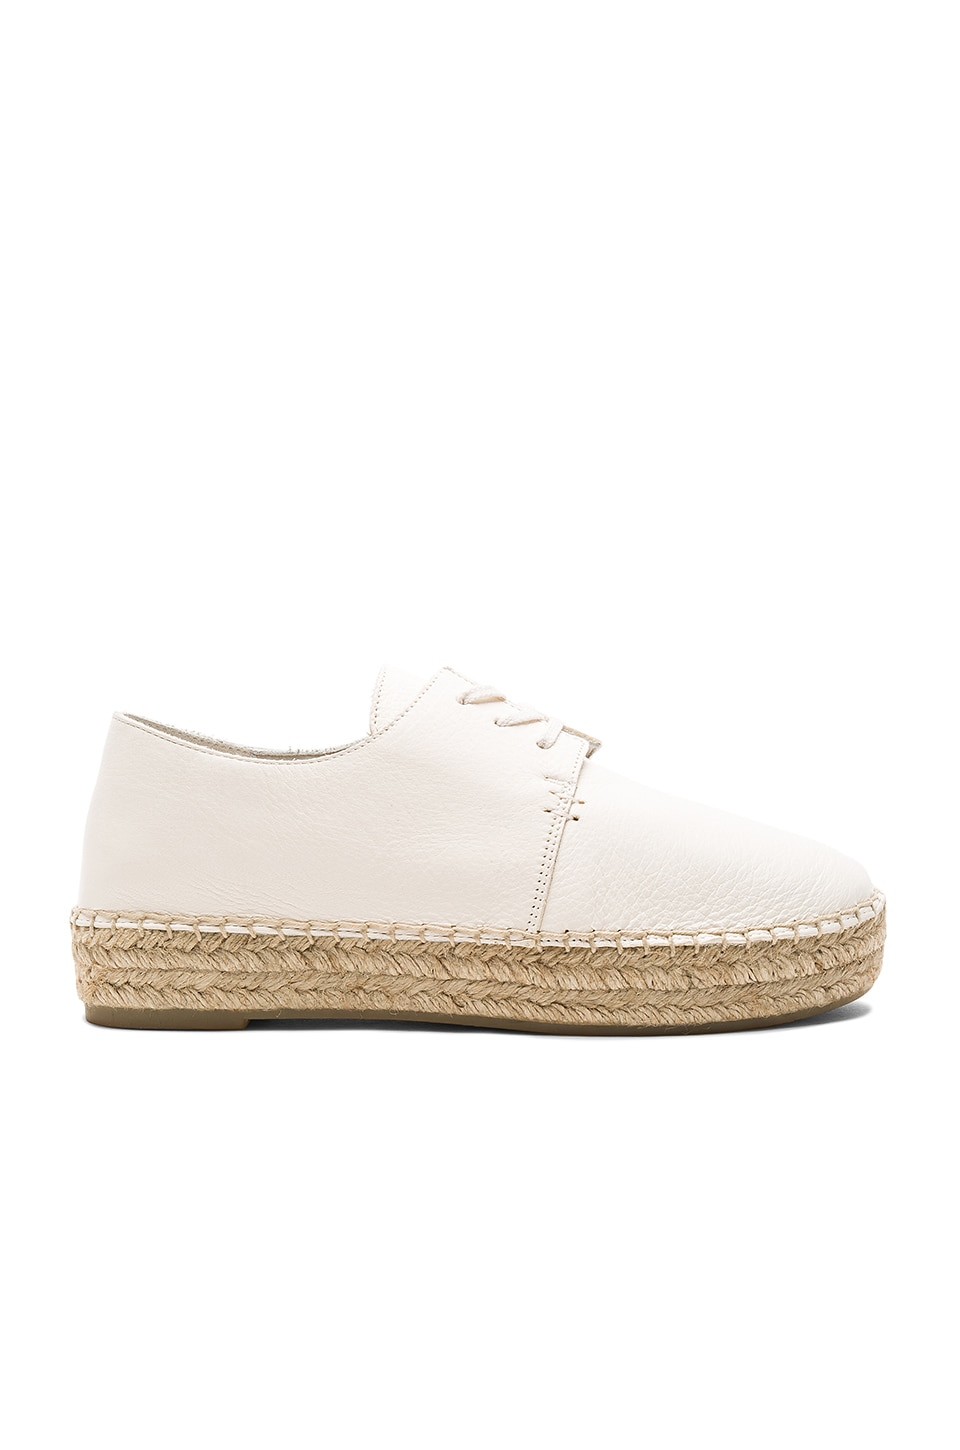 Vince Cynthia Espadrille in Cream